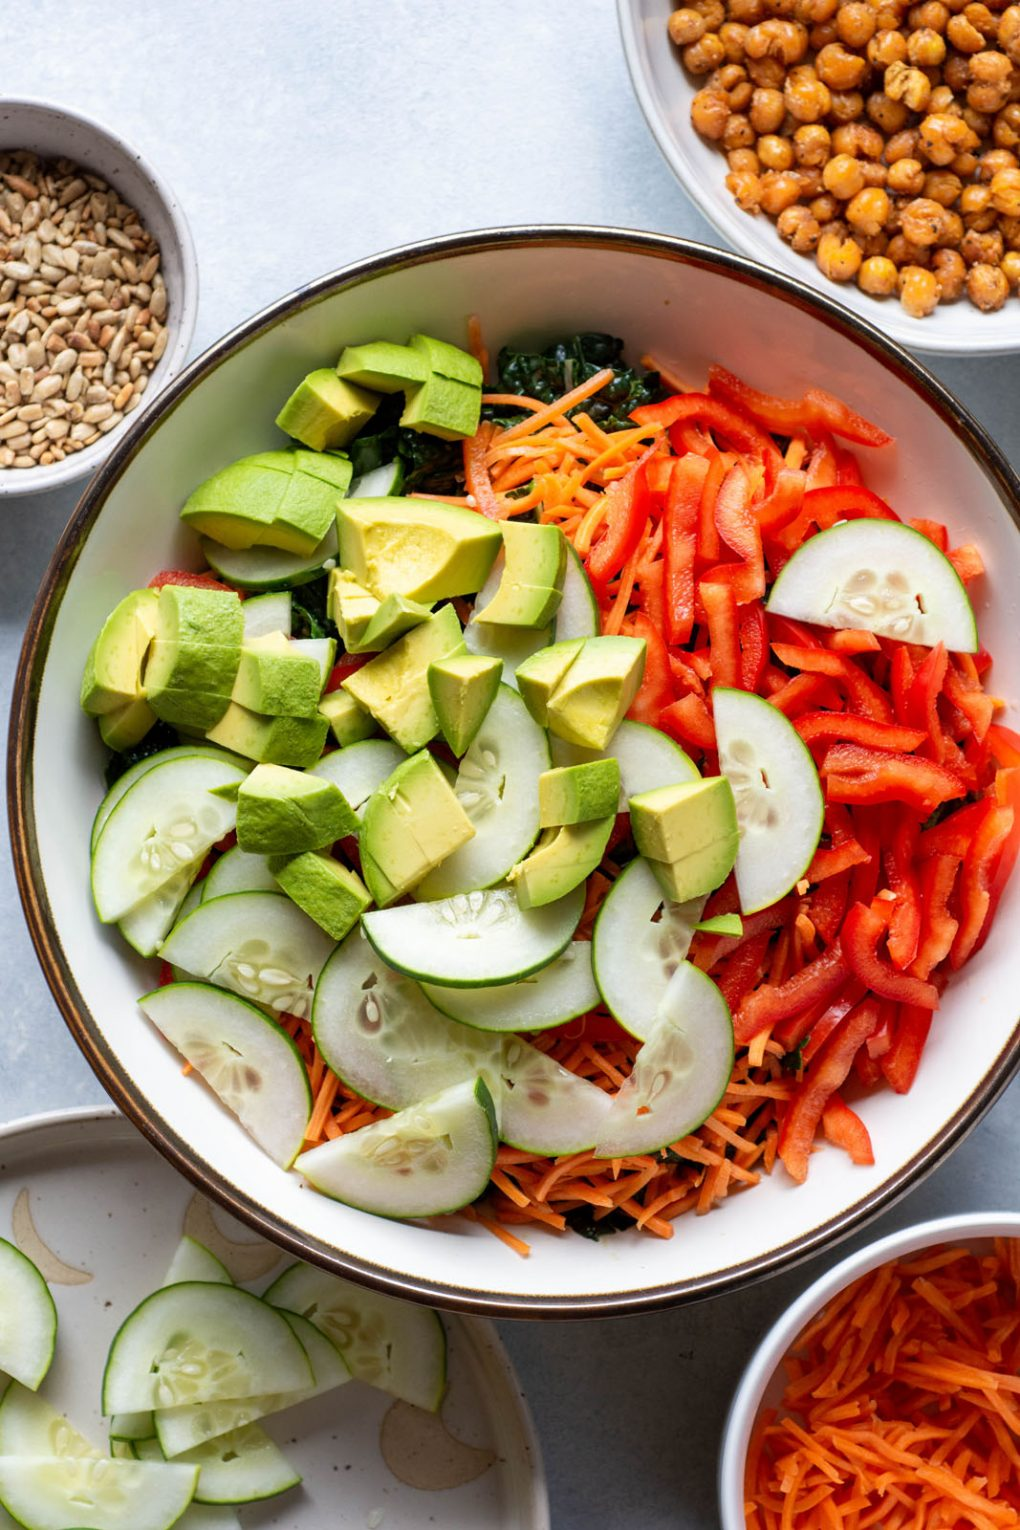 Overhead shot of a large white bowl filled with kale, shredded carrots, thinly sliced red pepper, thinly sliced cucumber, and avocado, on a light background